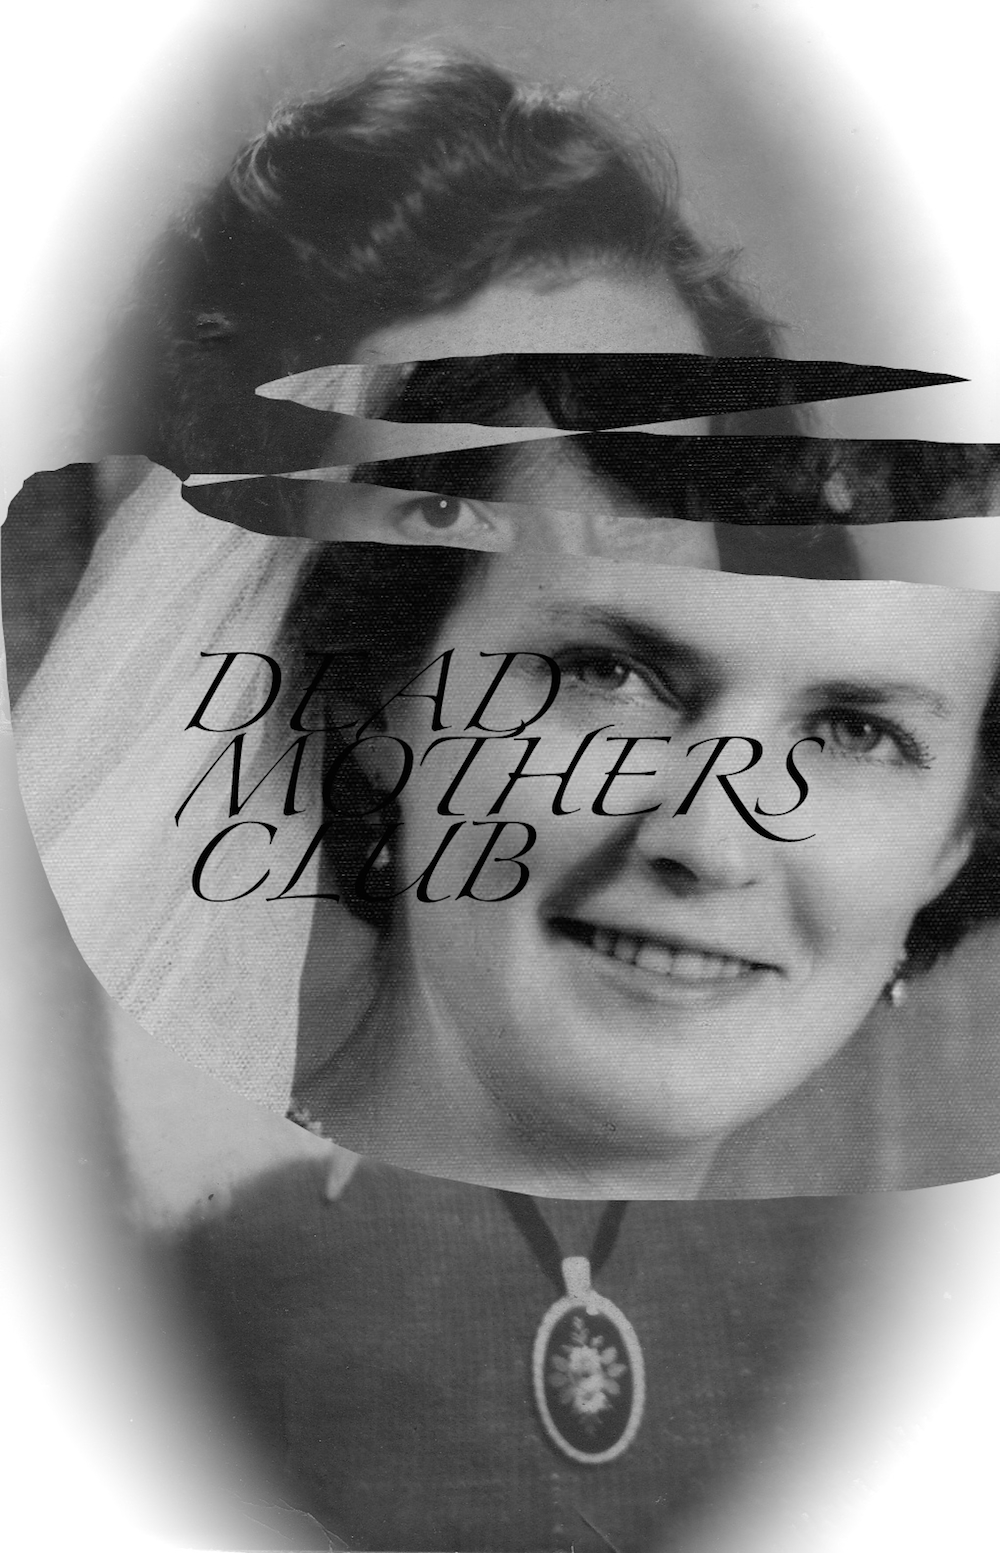 Dead Mothers Club